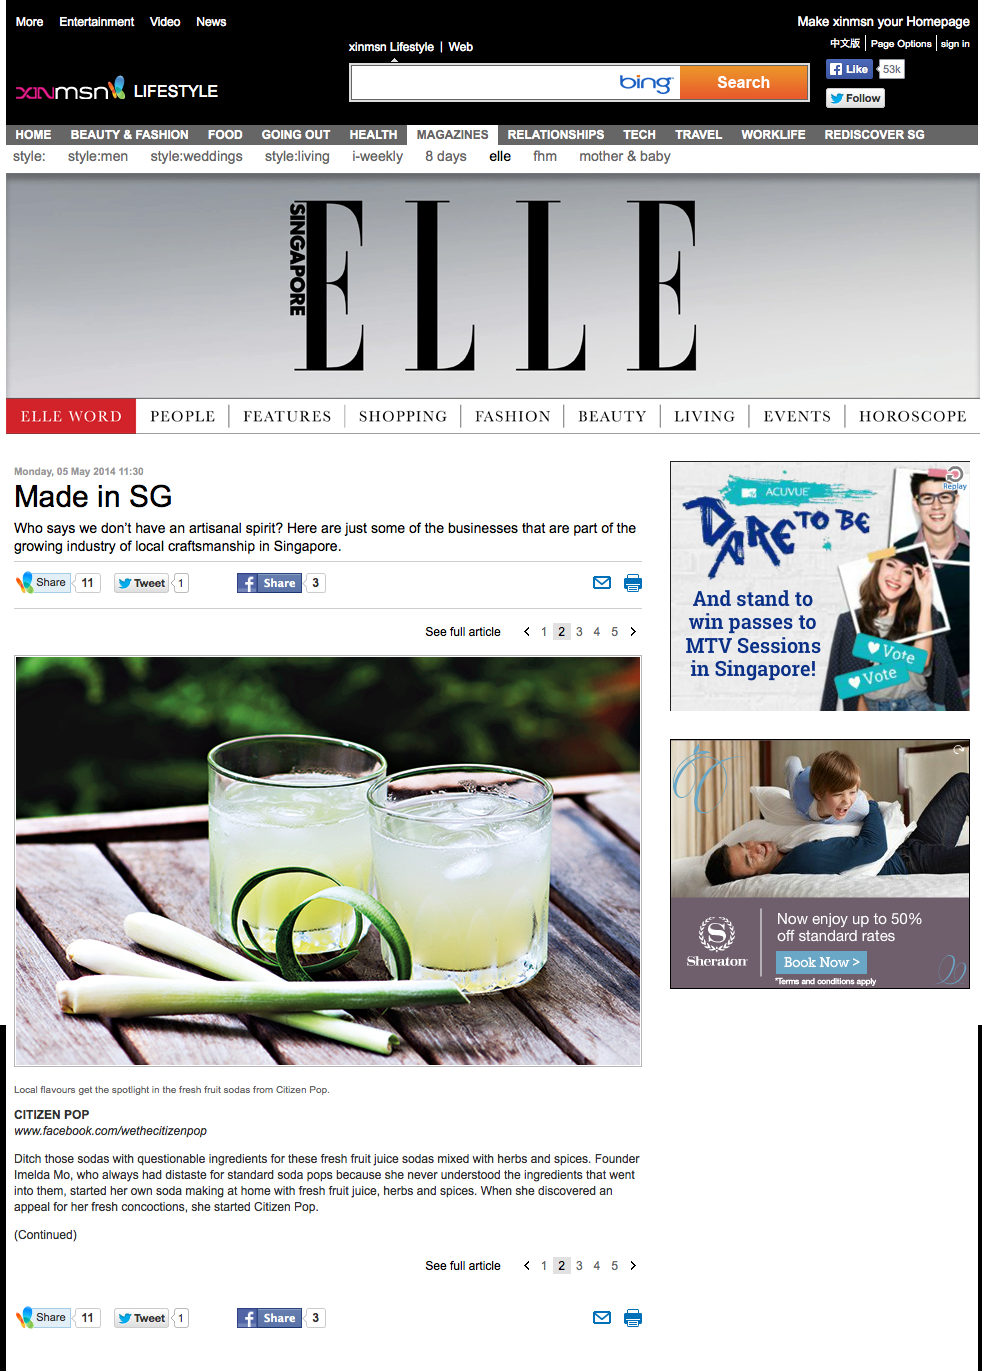 Elle on XinMsn - 5 May